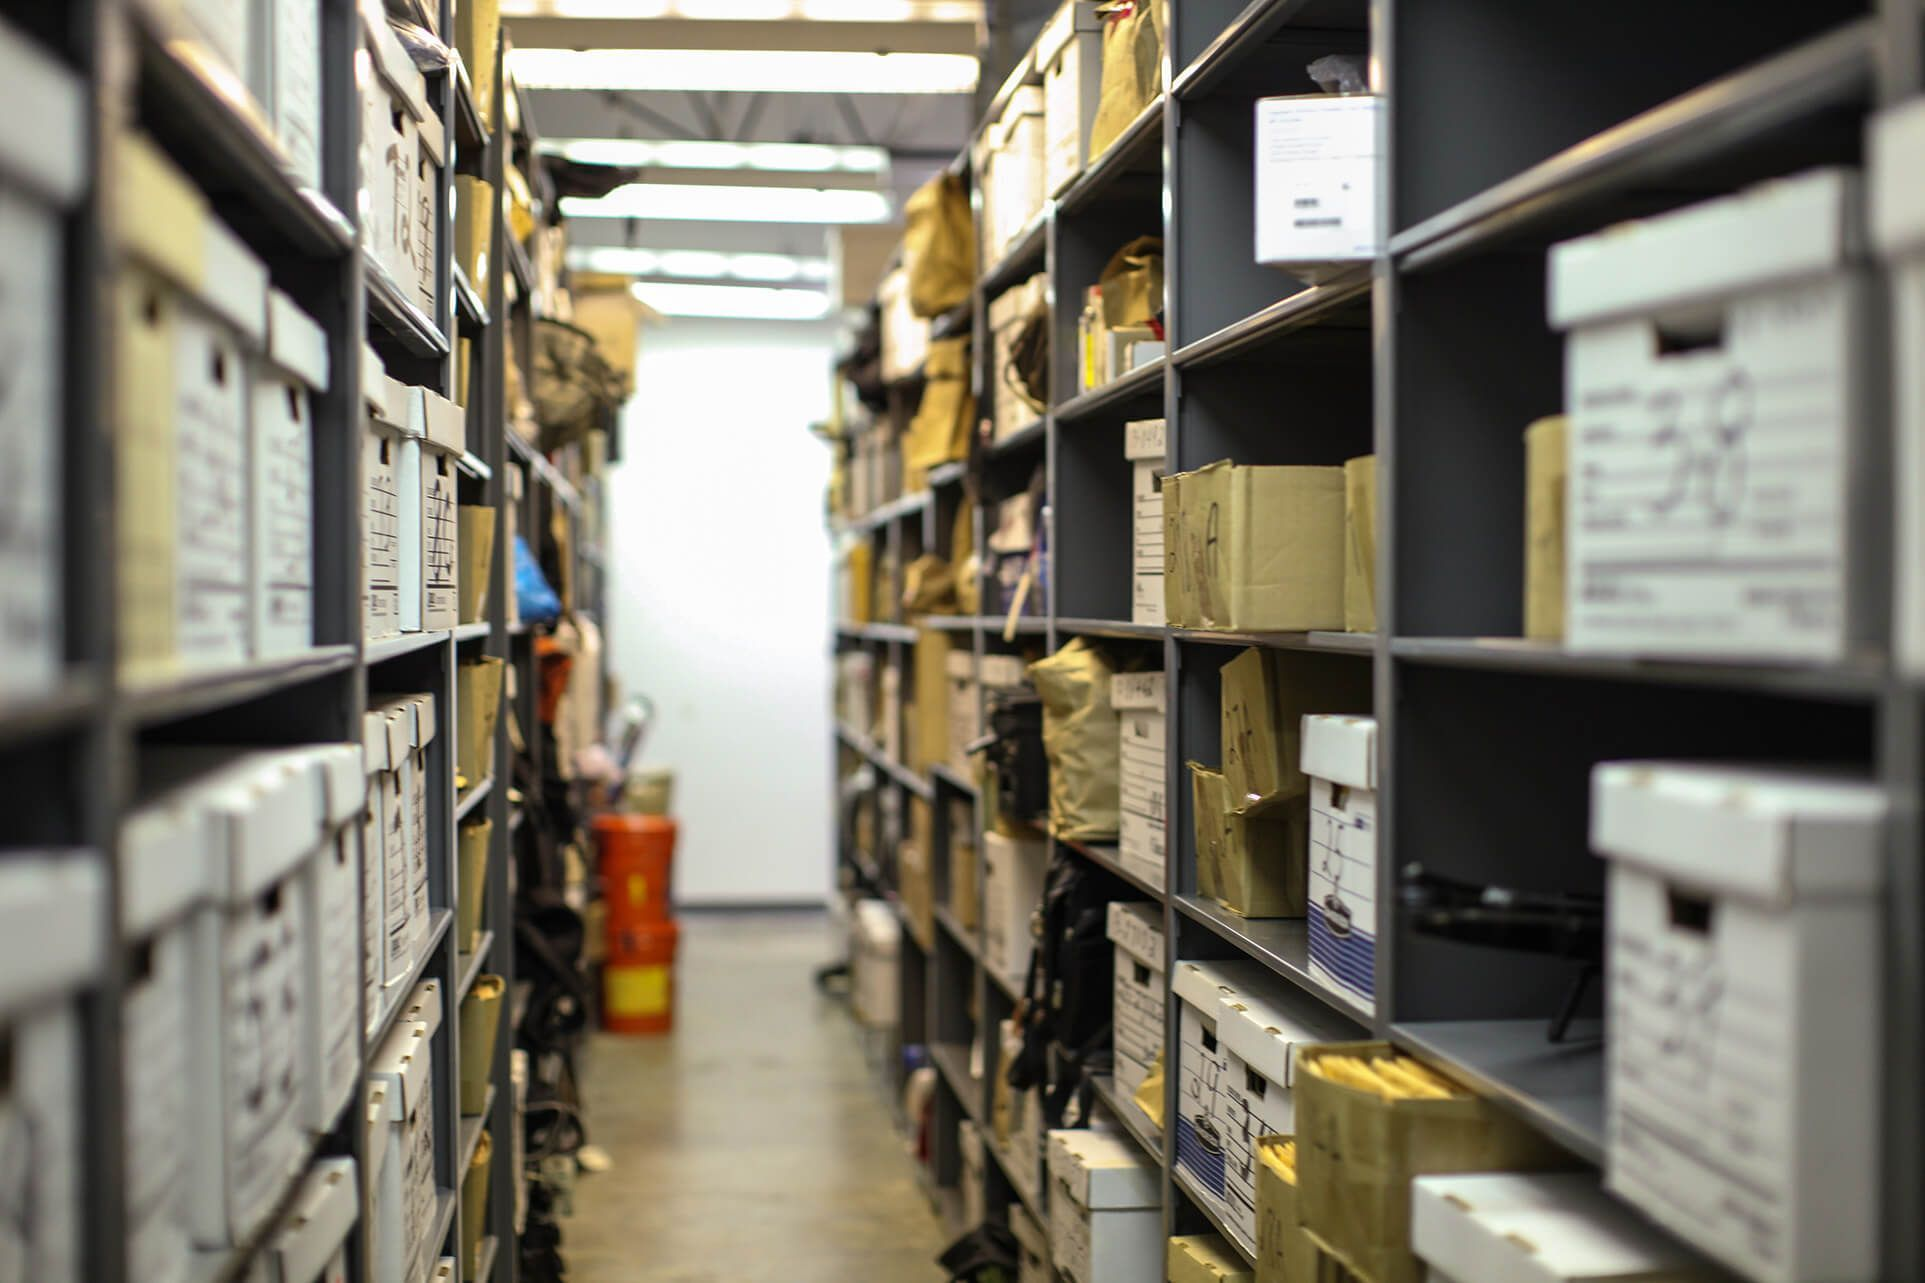 Evidence Storage Lockers Assist with Accreditation at